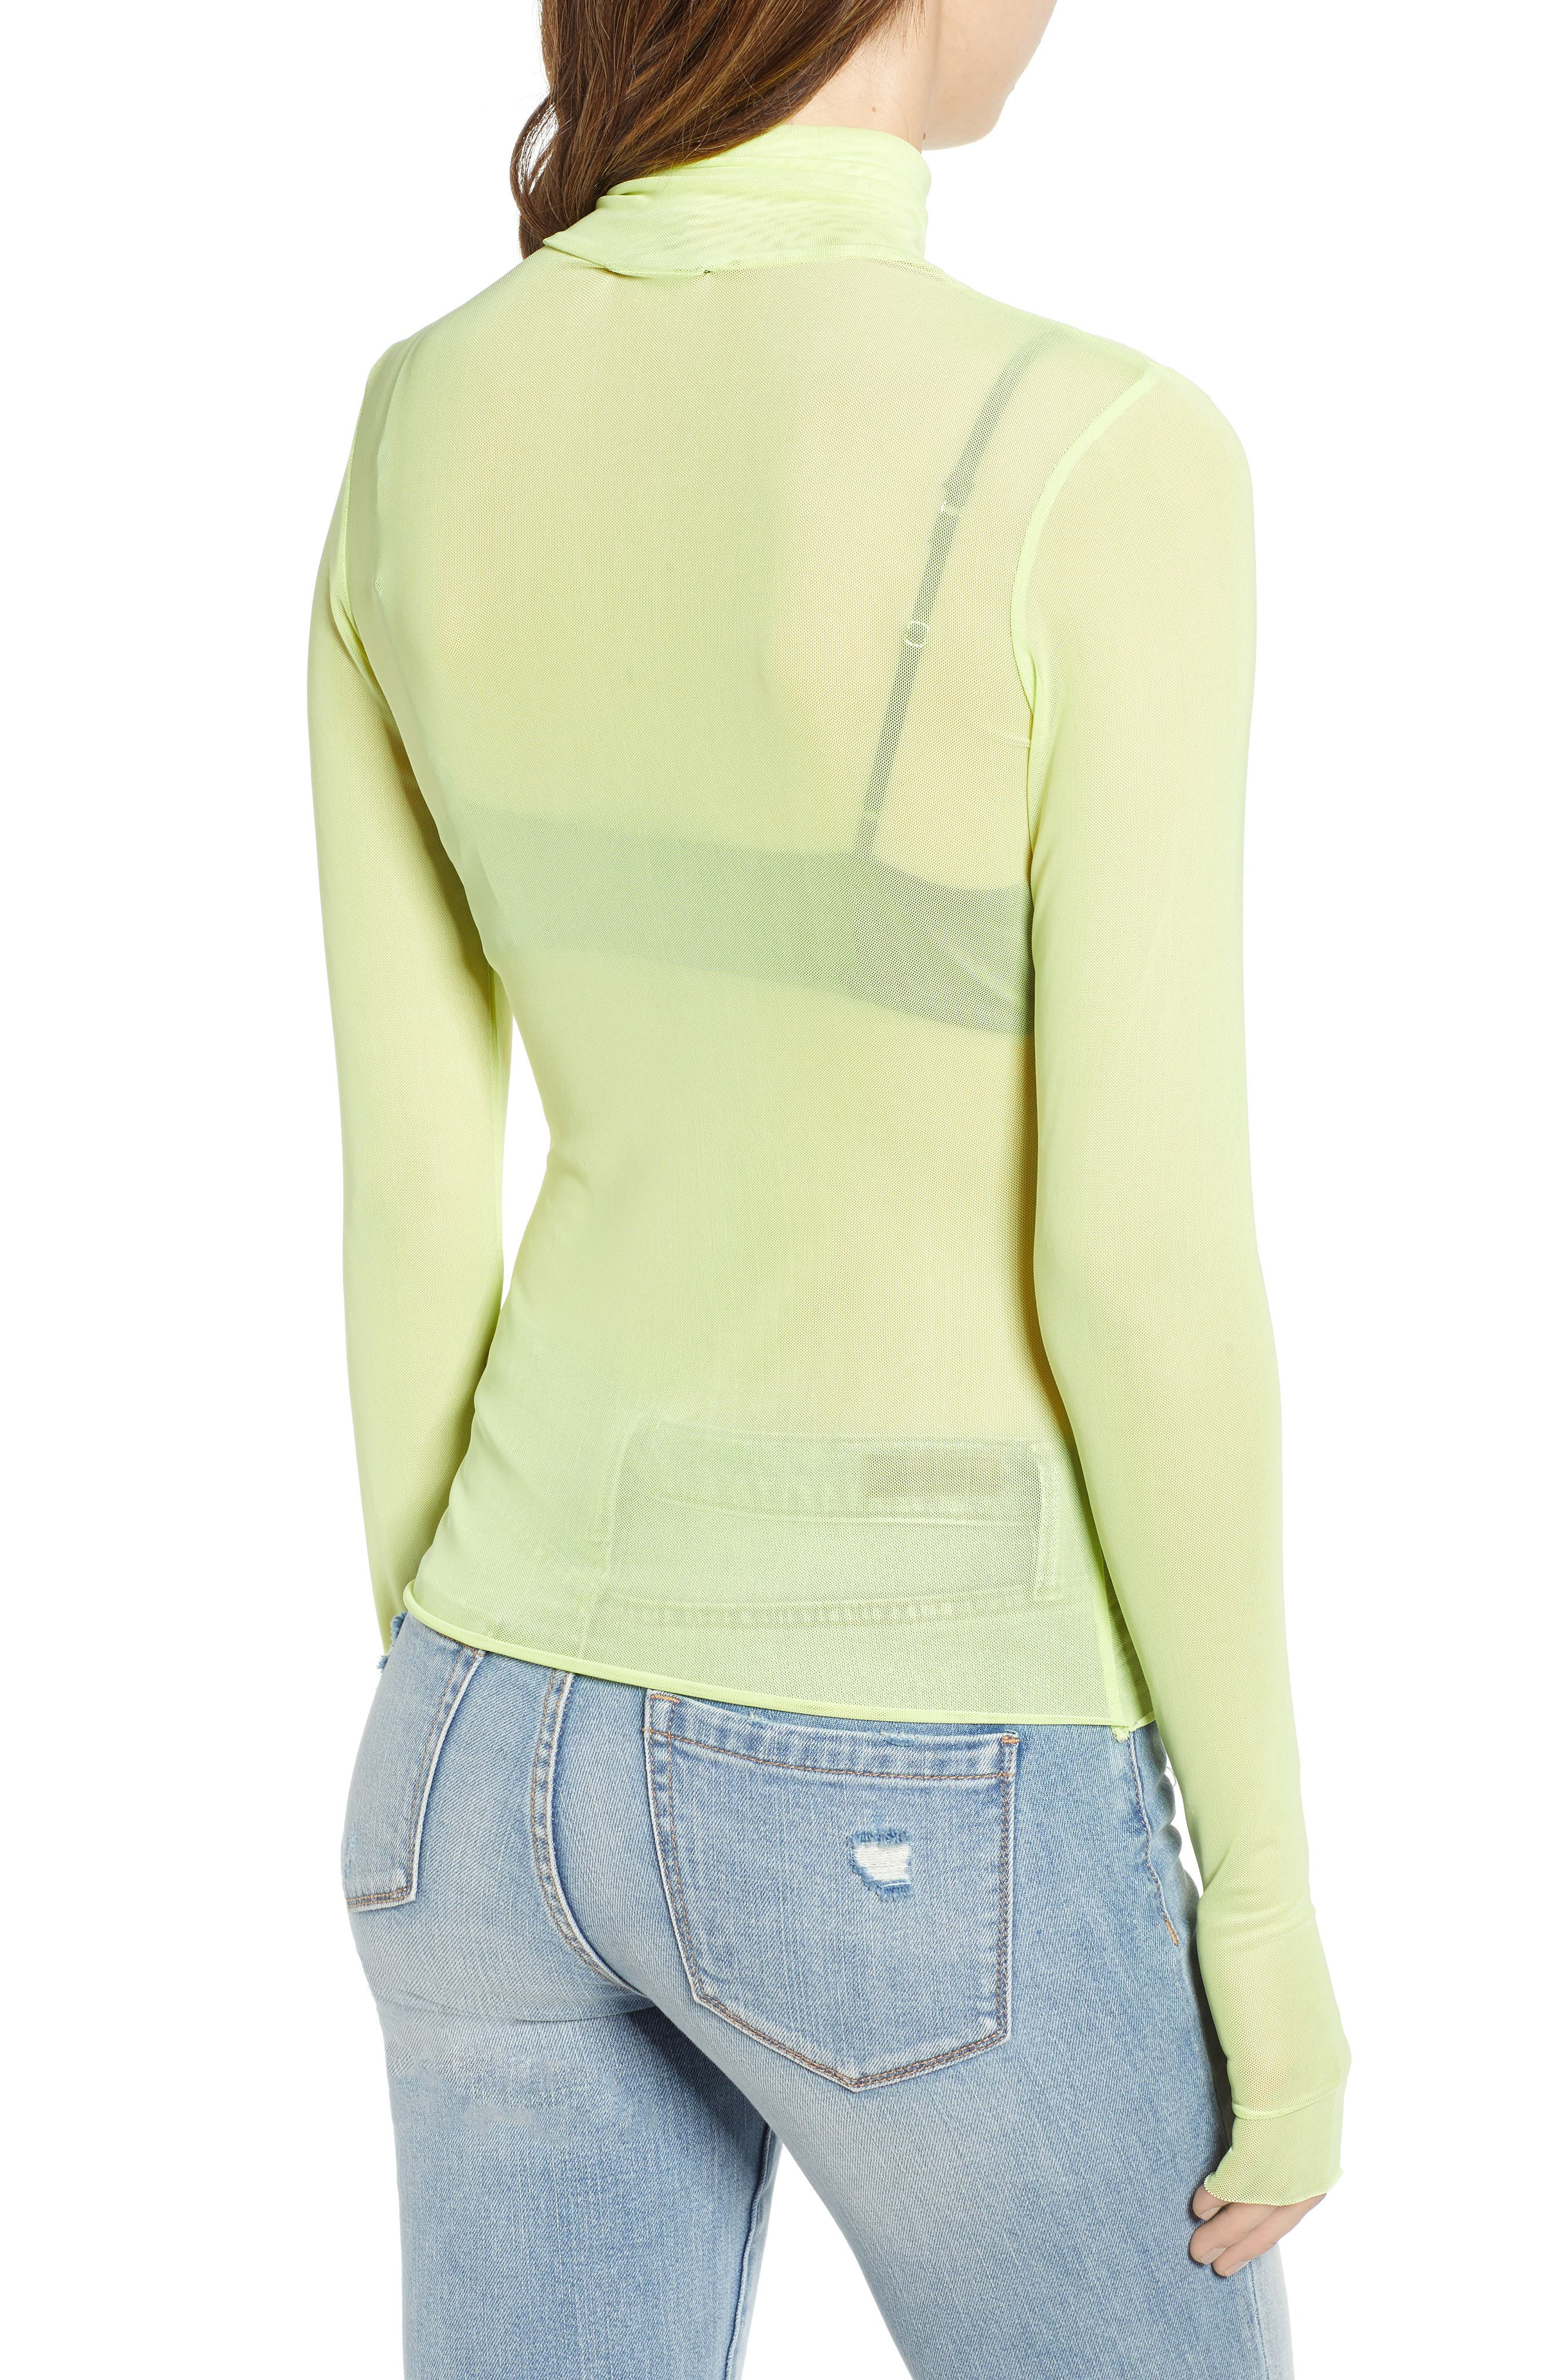 Zadie Semi Sheer Turtleneck,                             Alternate thumbnail 2, color,                             320